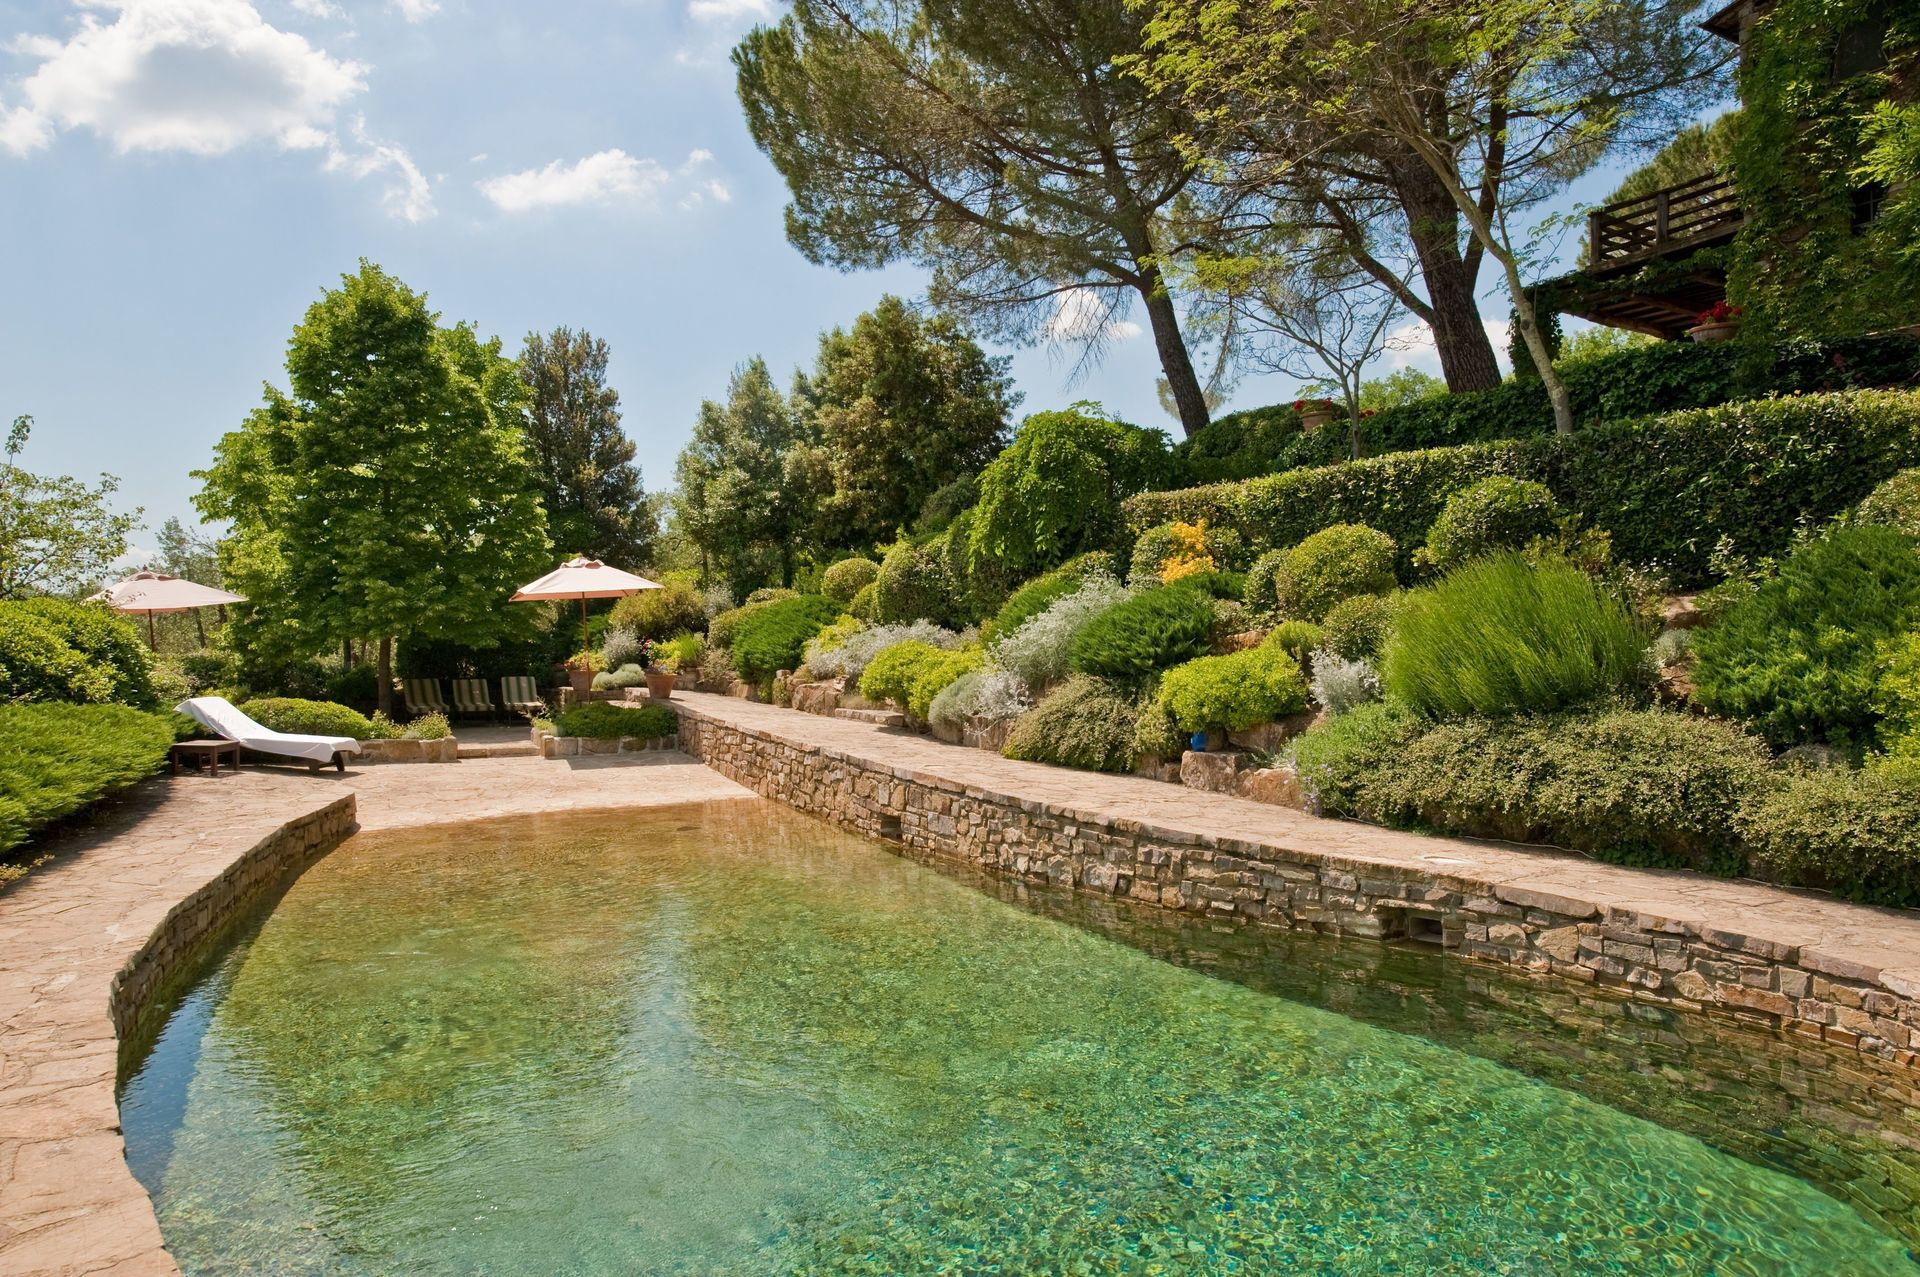 greve in chianti villa vacation rental villa le corti that sleeps